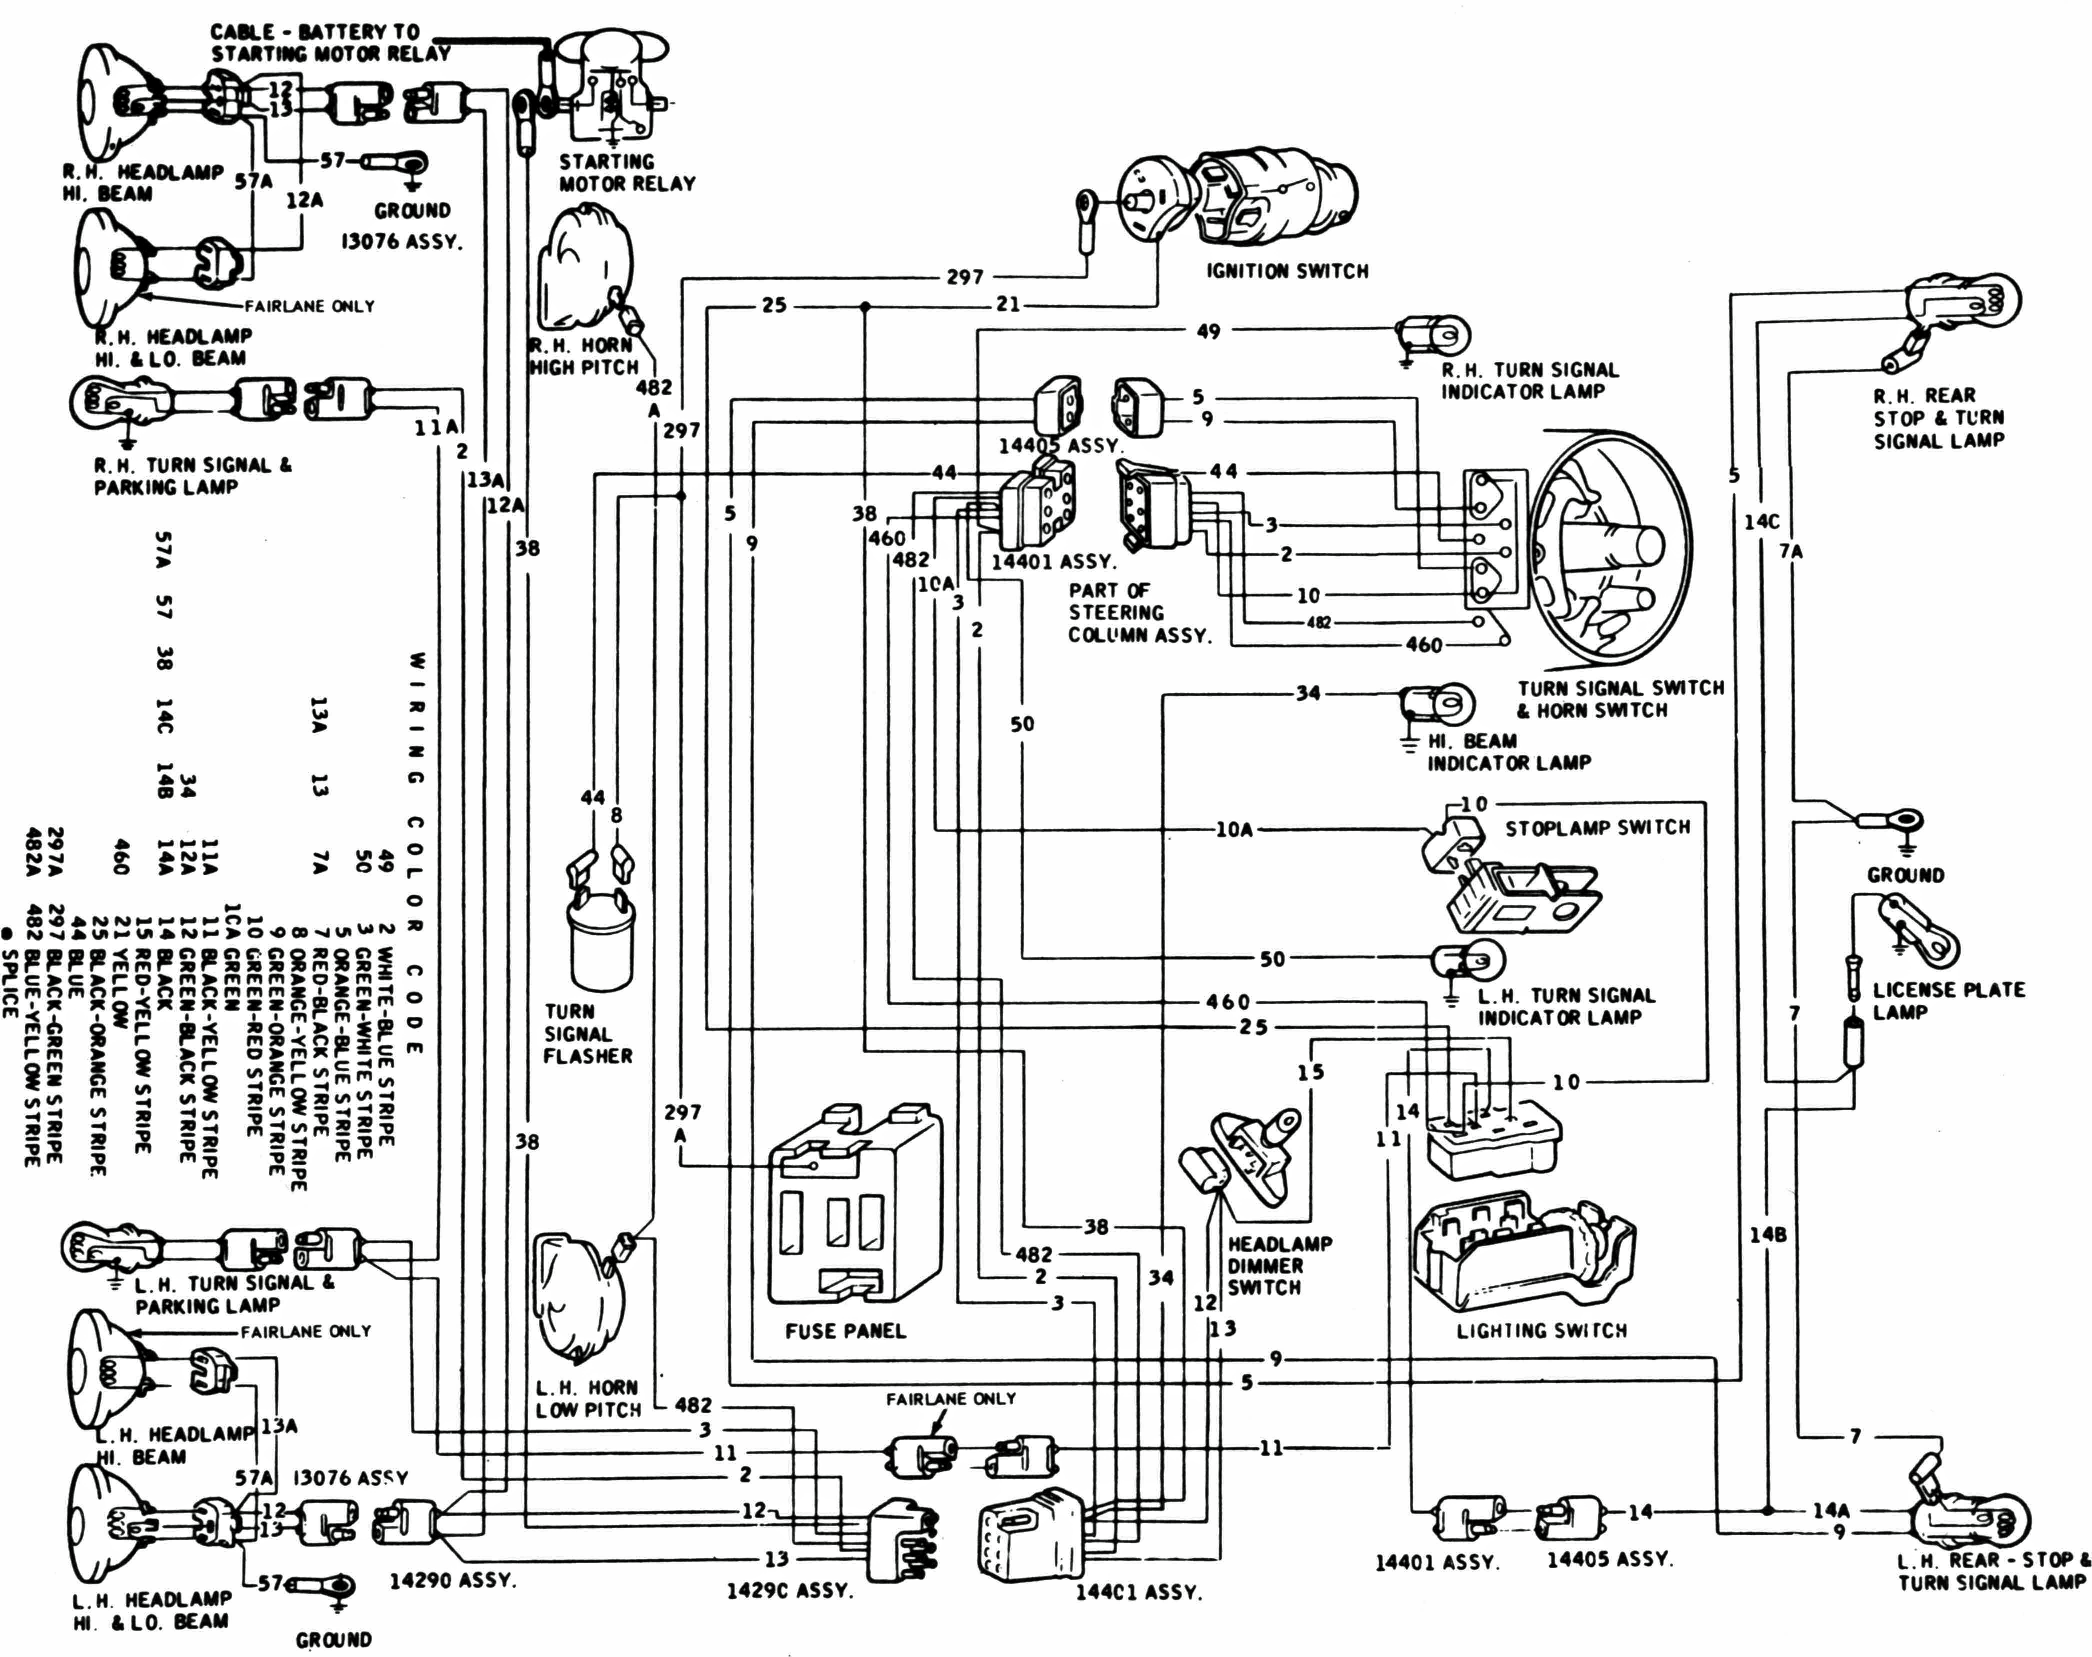 1964 Ford Galaxie Wiring Harness Wiring Diagram Monitor1 Monitor1 Maceratadoc It